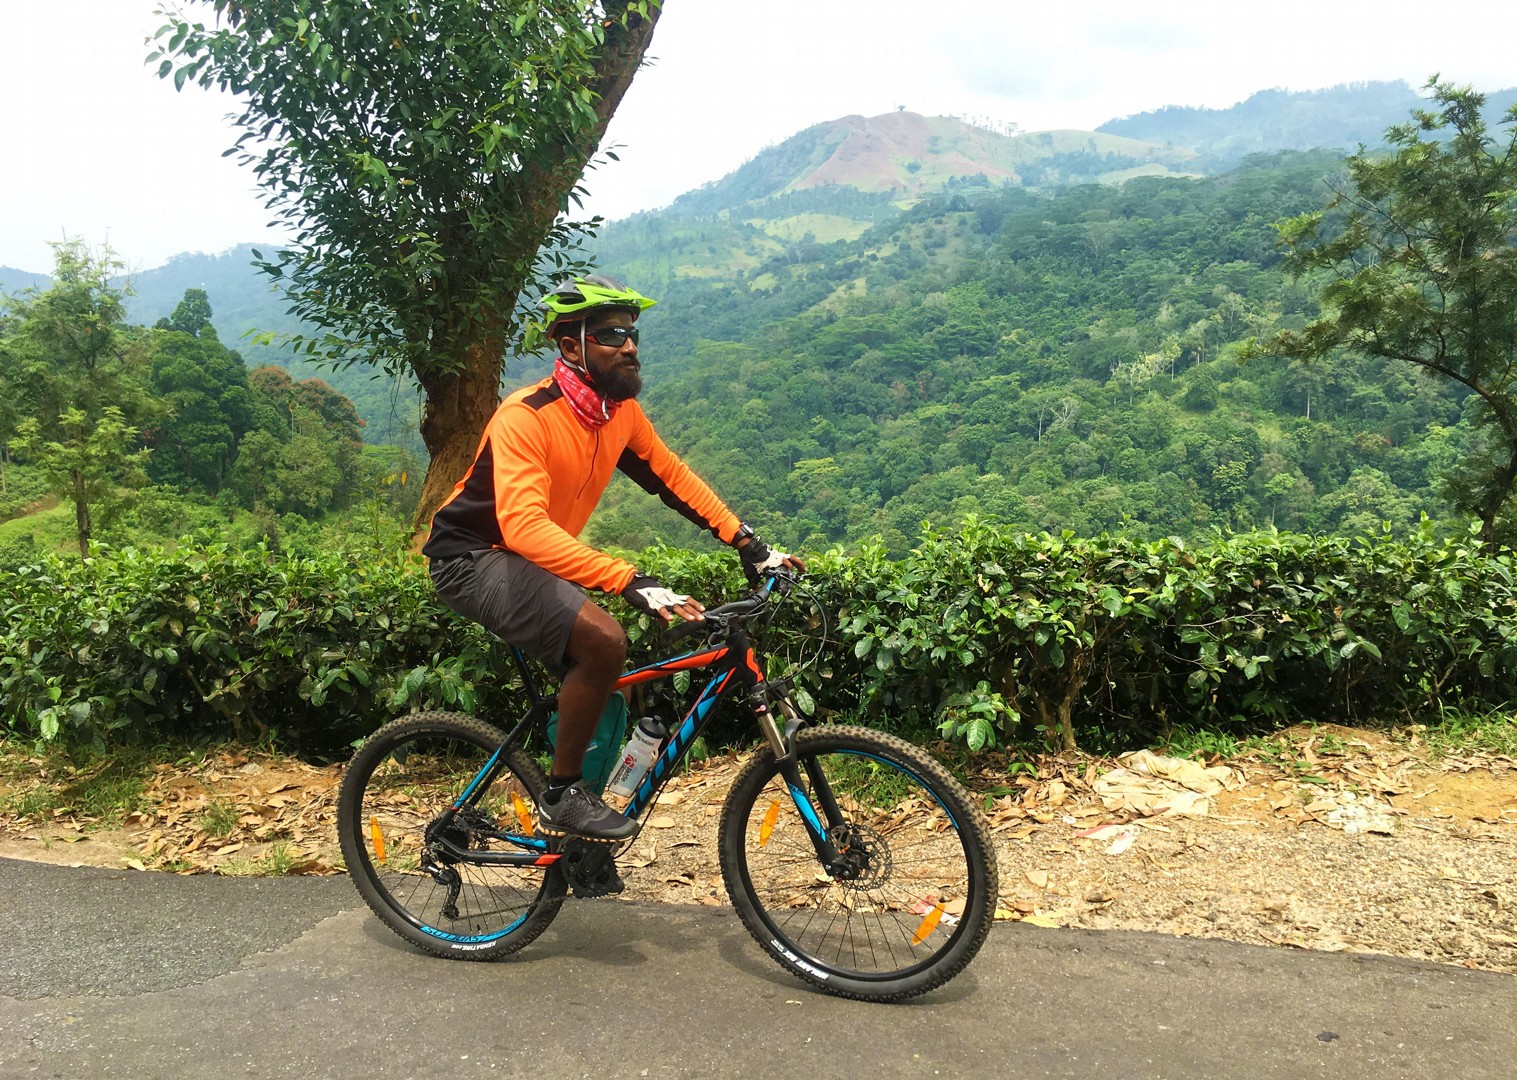 group-guided-cycling-adventure-in-sri-lanka.jpg - Sri Lanka - Backroads and Beaches - Cycling Adventures